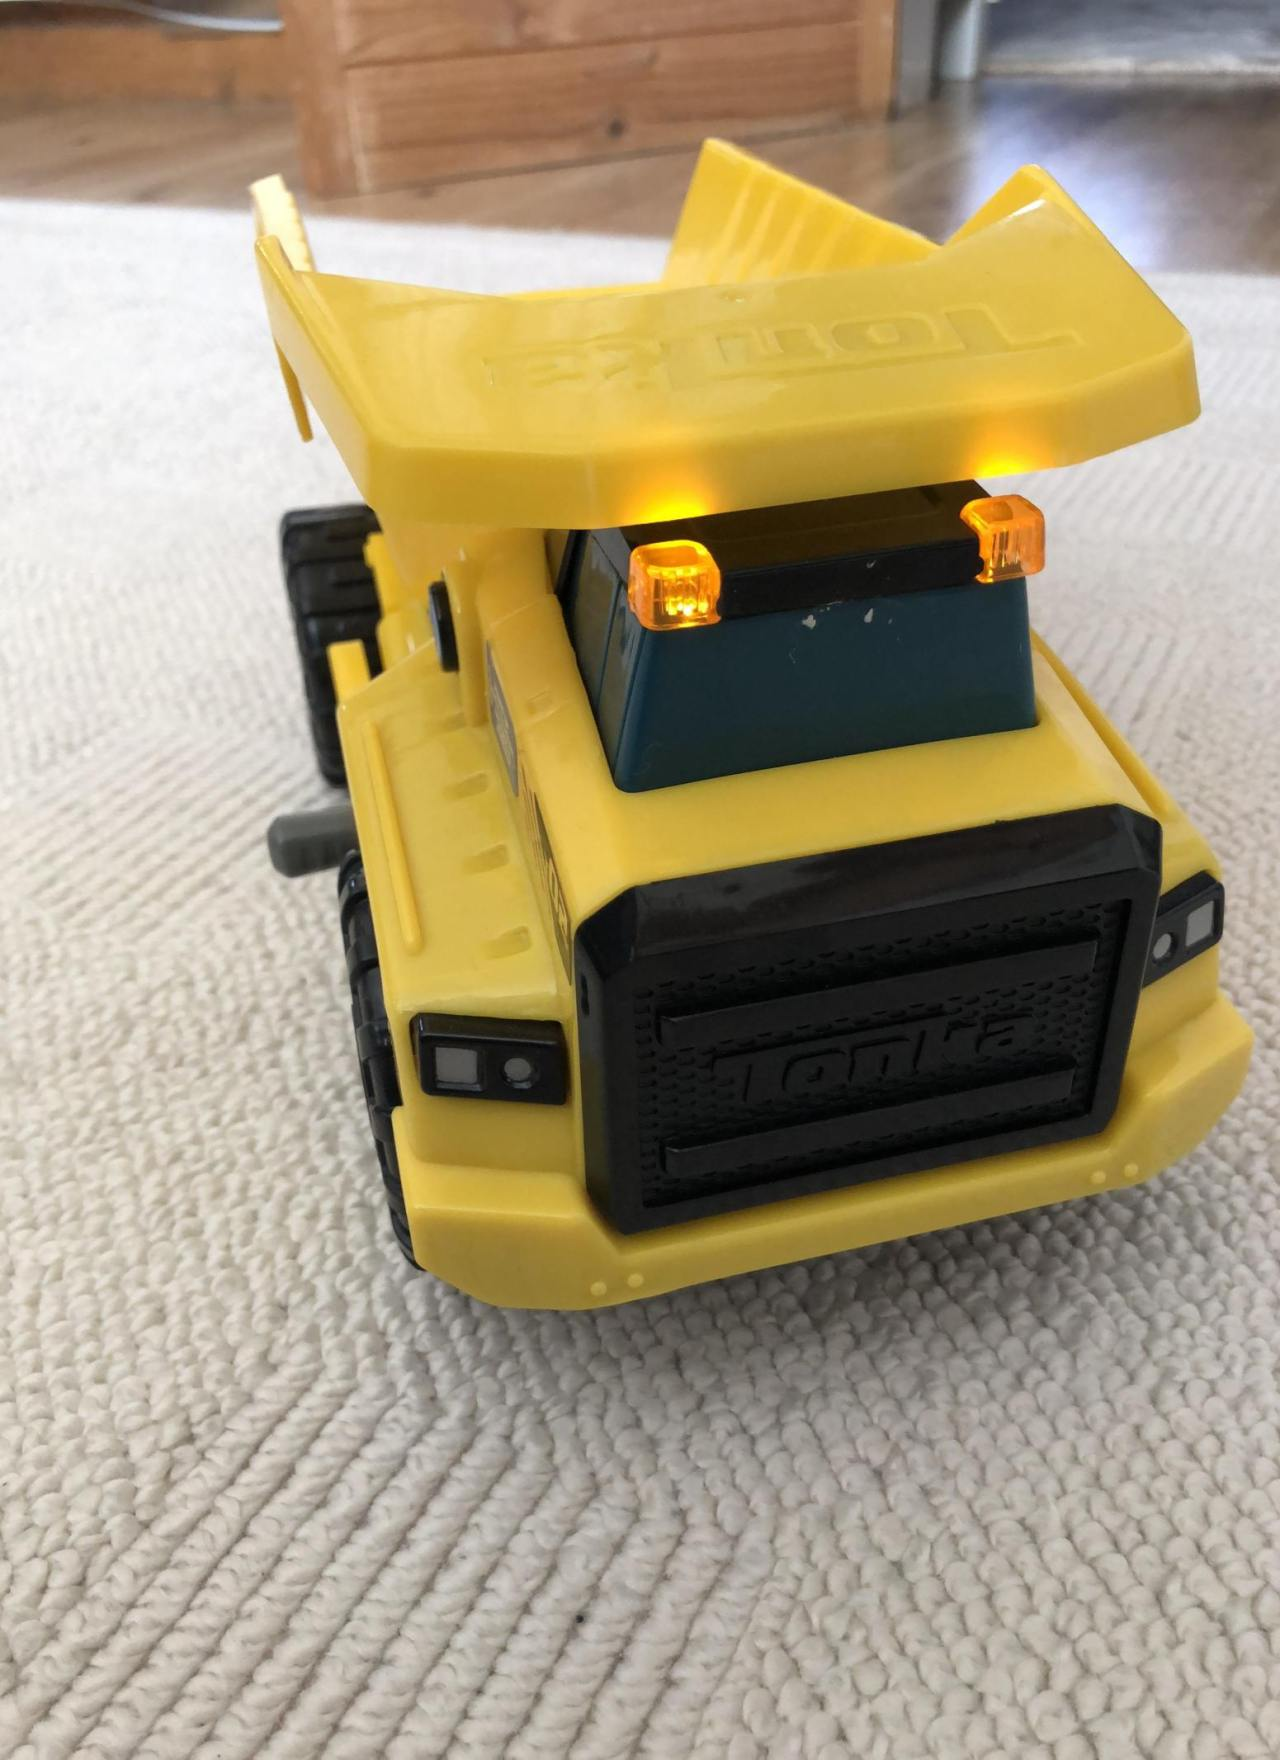 Tonka Power Movers Vehicles – Dump Truck Review